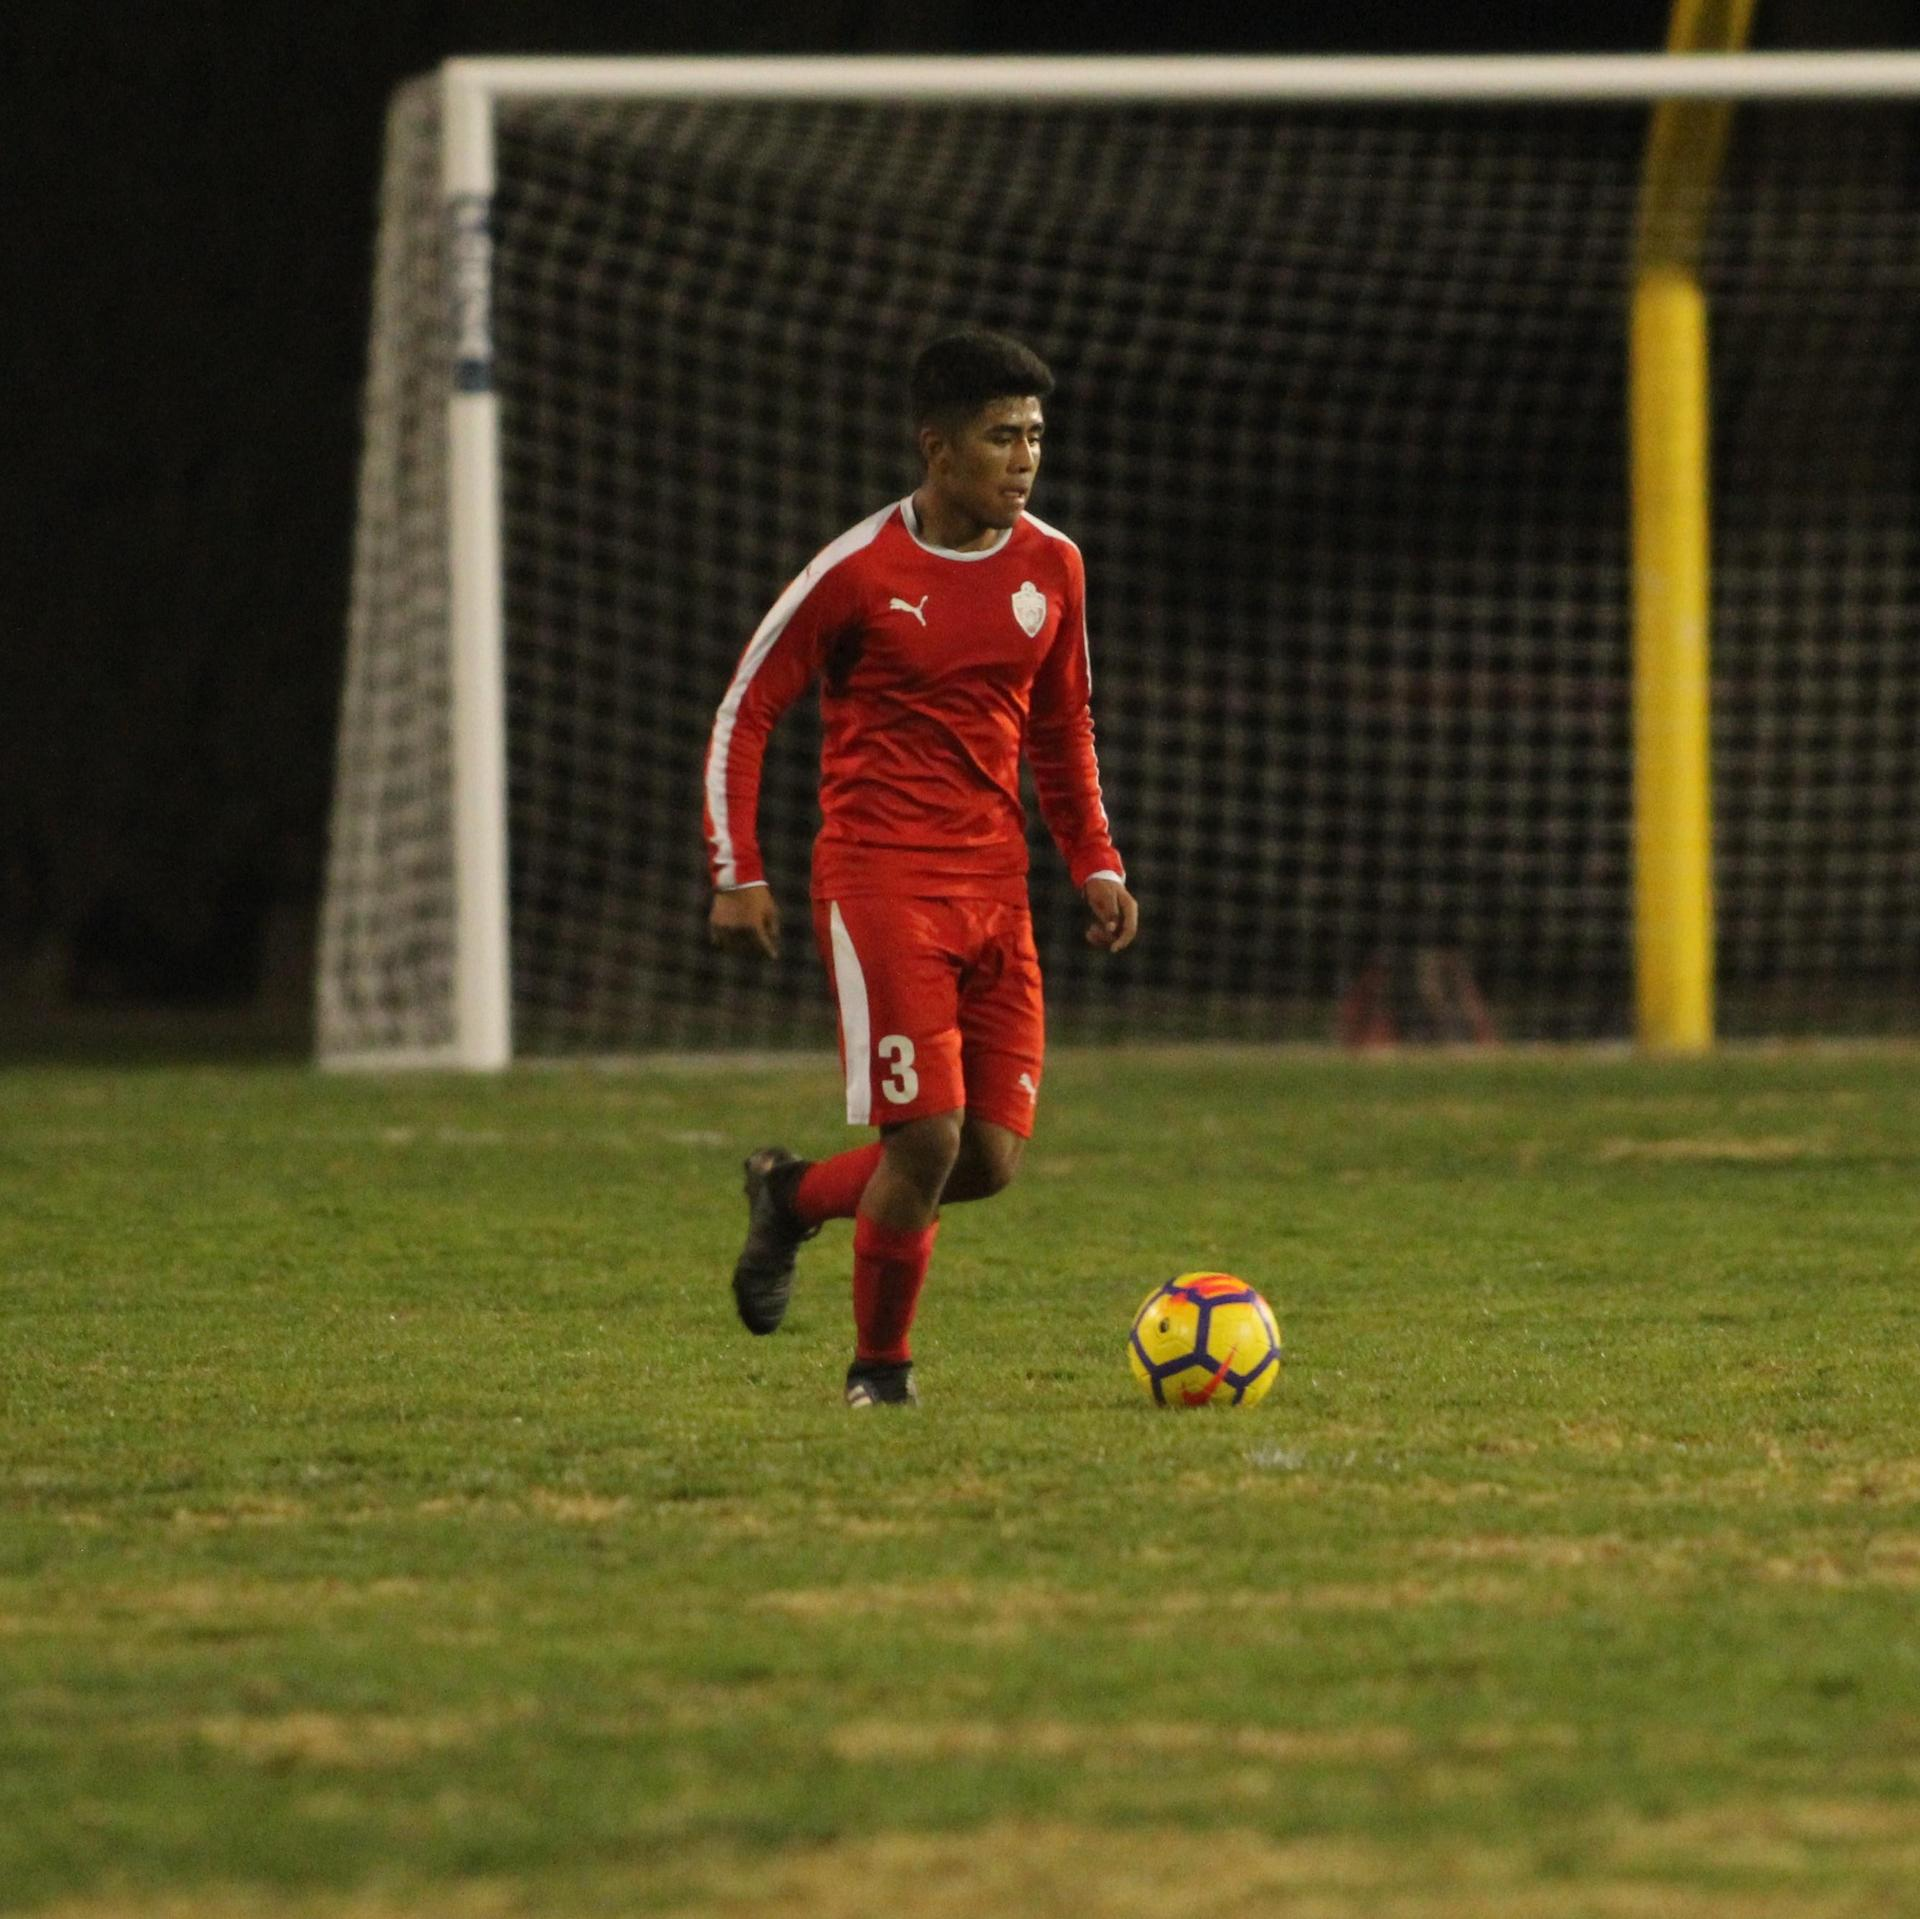 Alejandro Montes with the ball